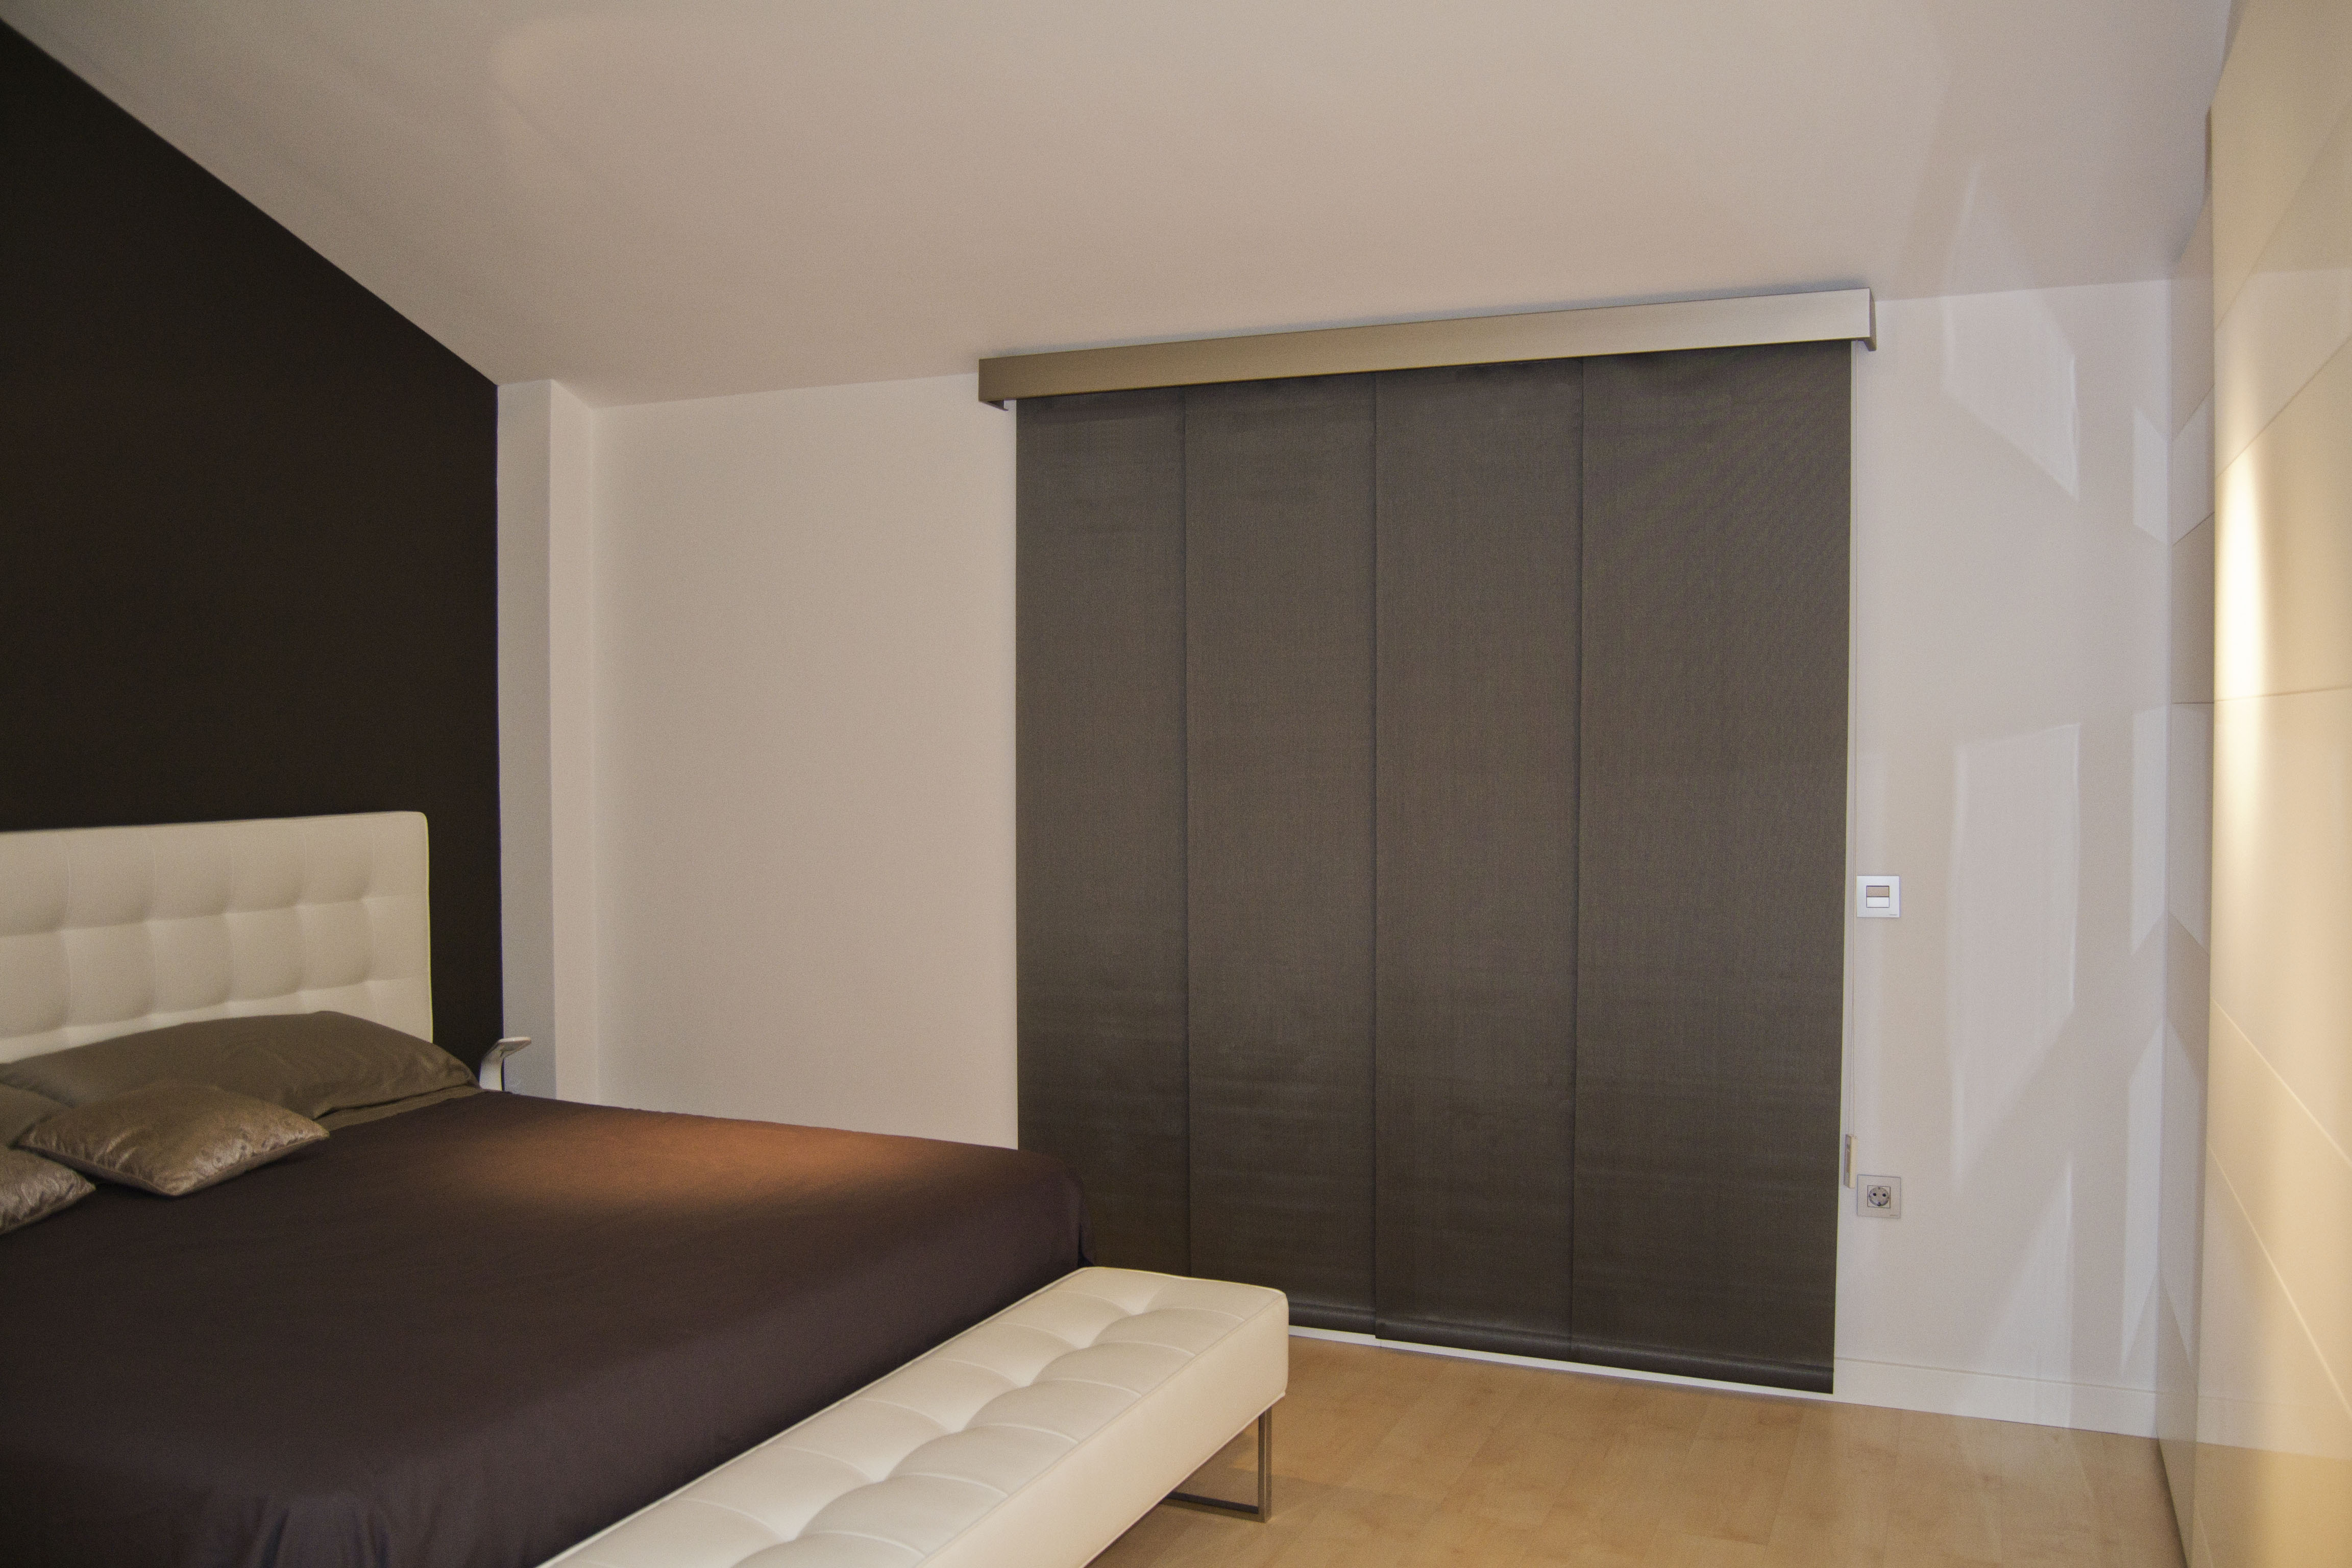 301 moved permanently - Panel japones cortinas ...